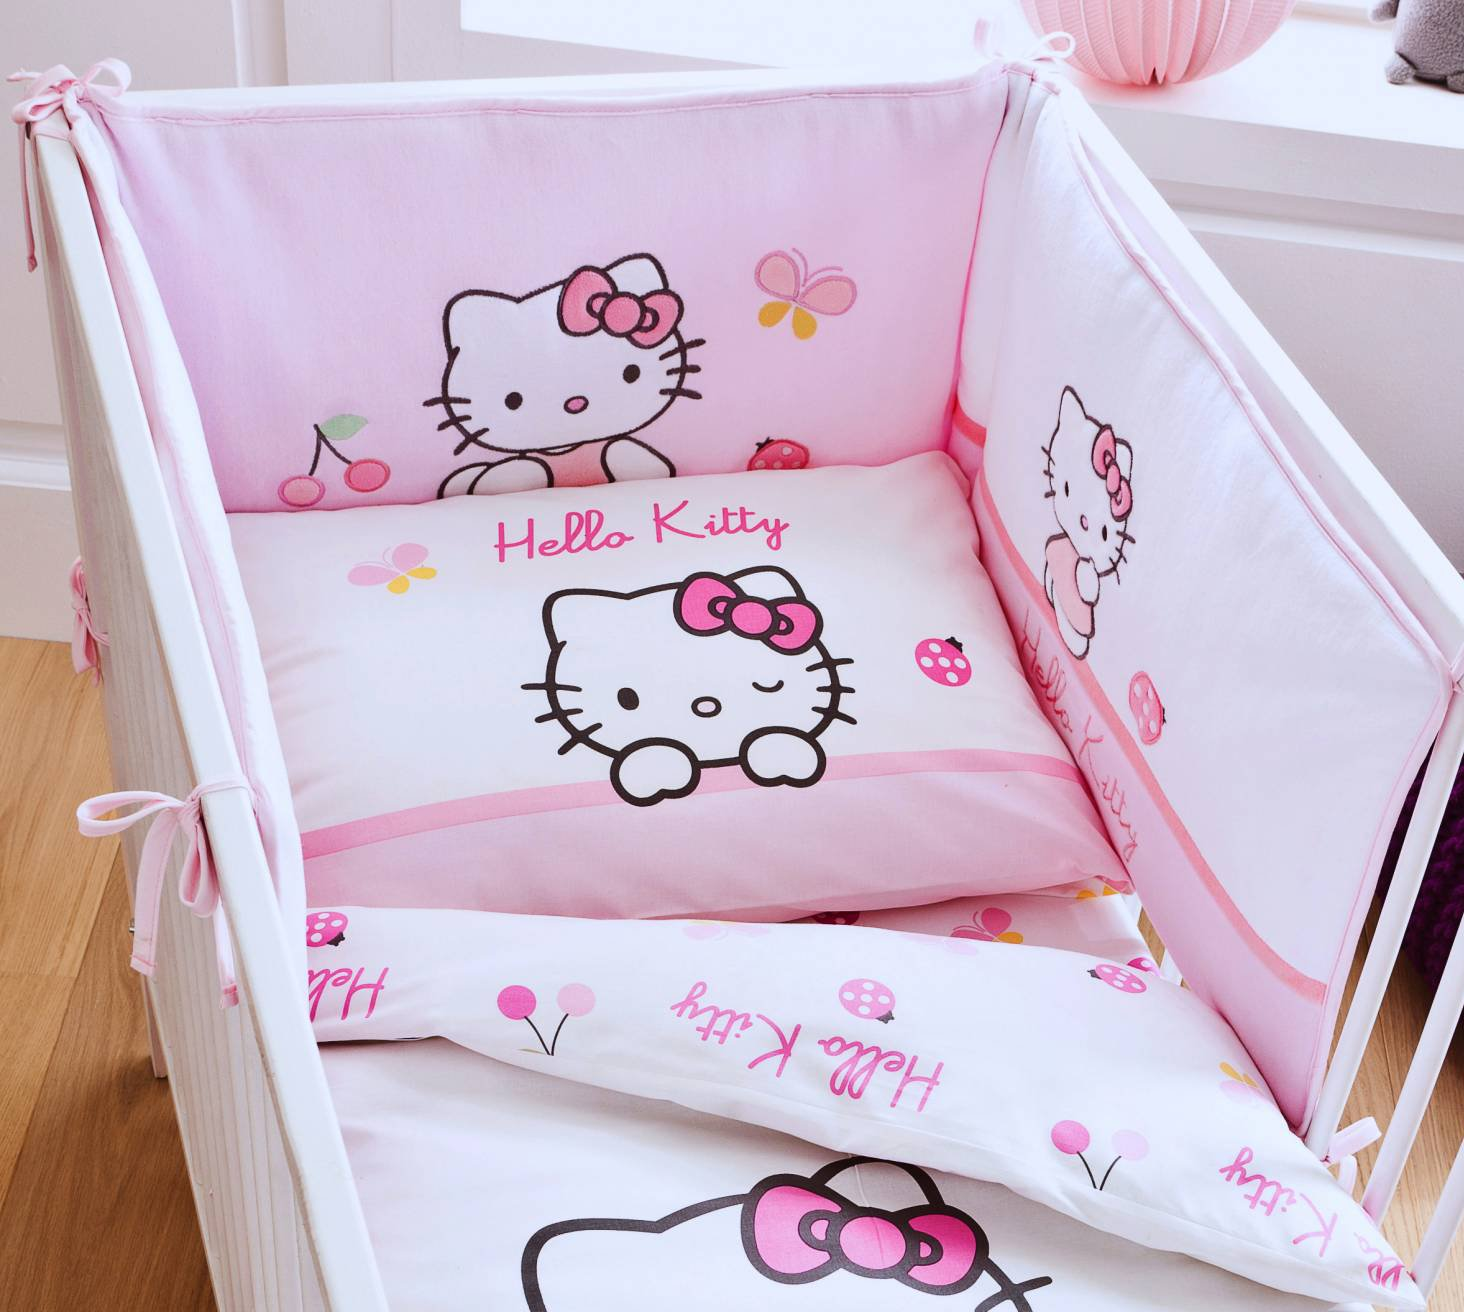 tour de lit hello kitty 40 x 180 cm coccinelle hello kitty b b pu riculture. Black Bedroom Furniture Sets. Home Design Ideas